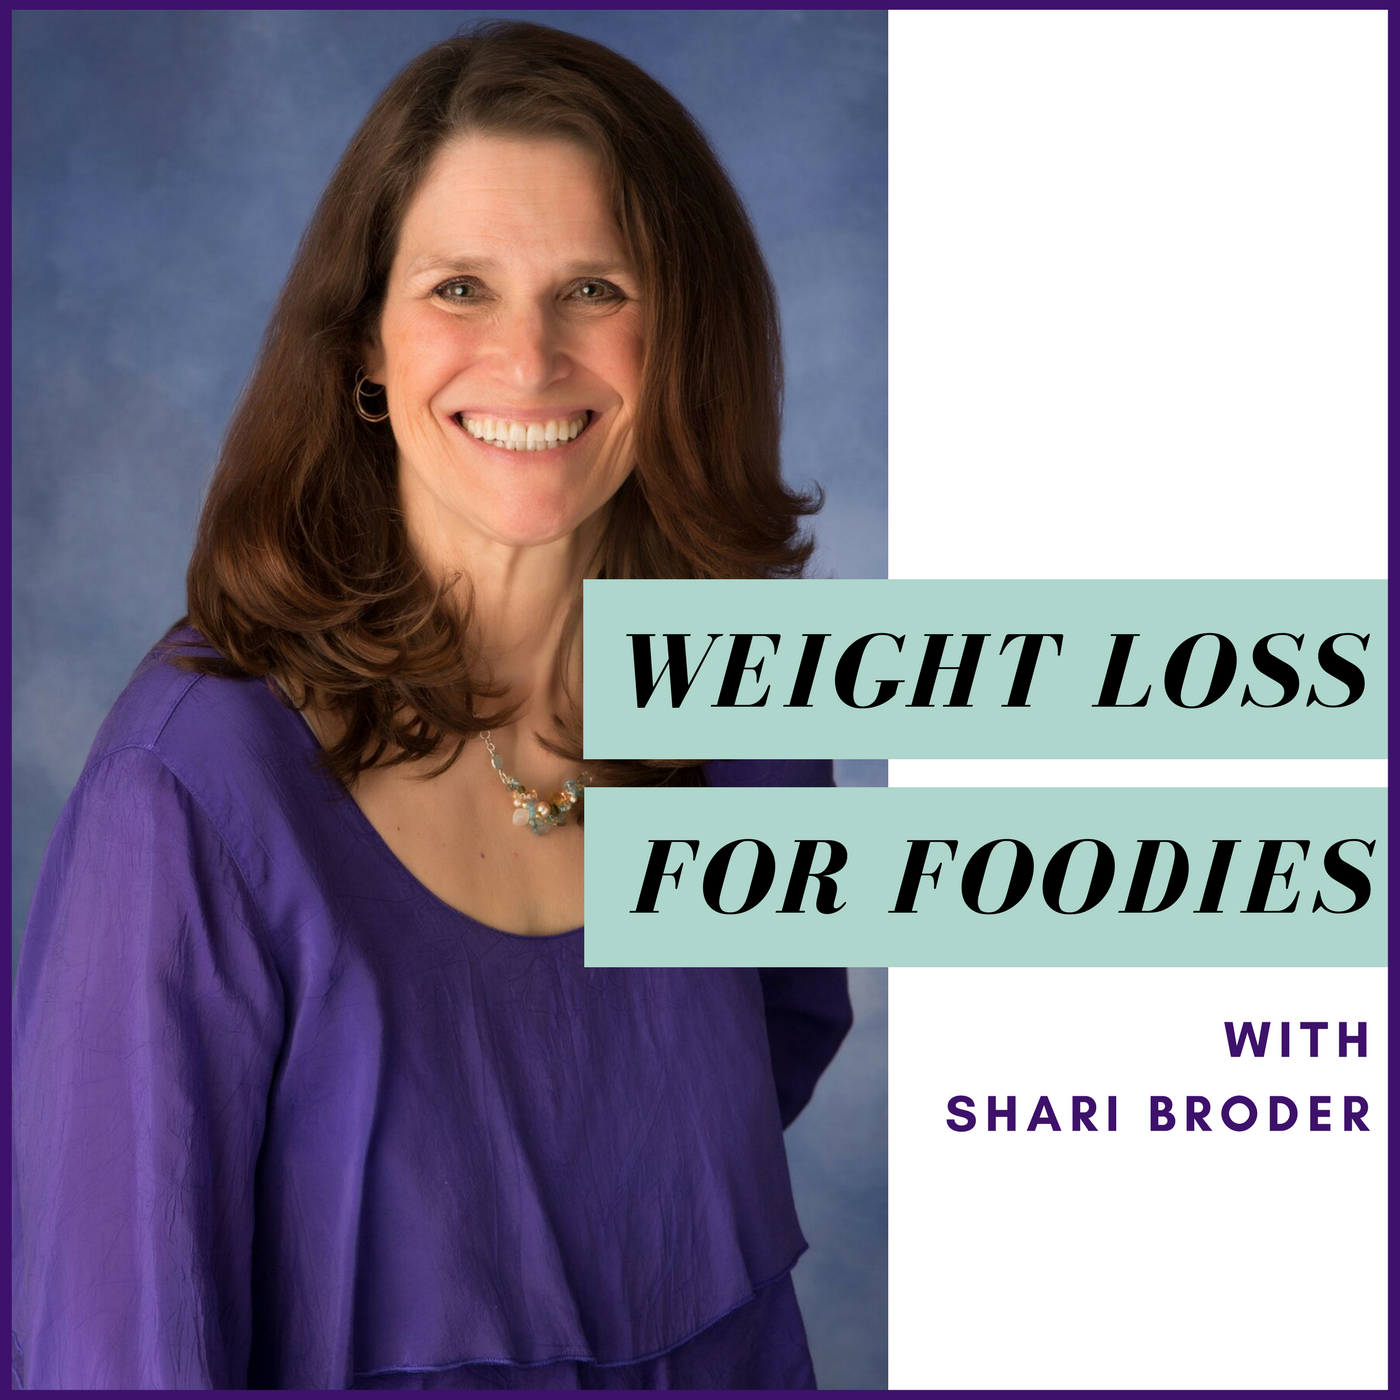 Weight Loss for Foodies podcast